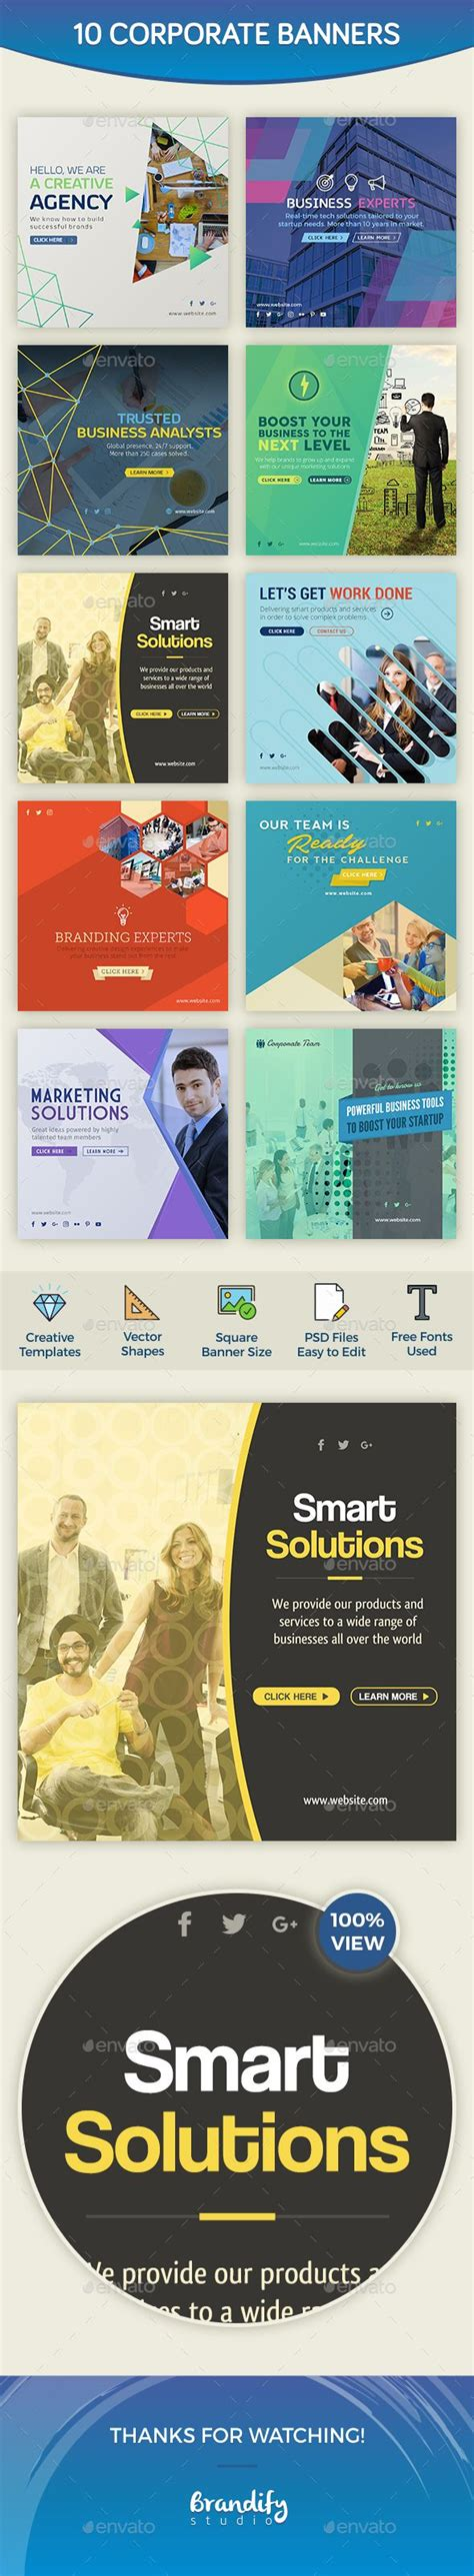 25 great ideas about ad design on pinterest